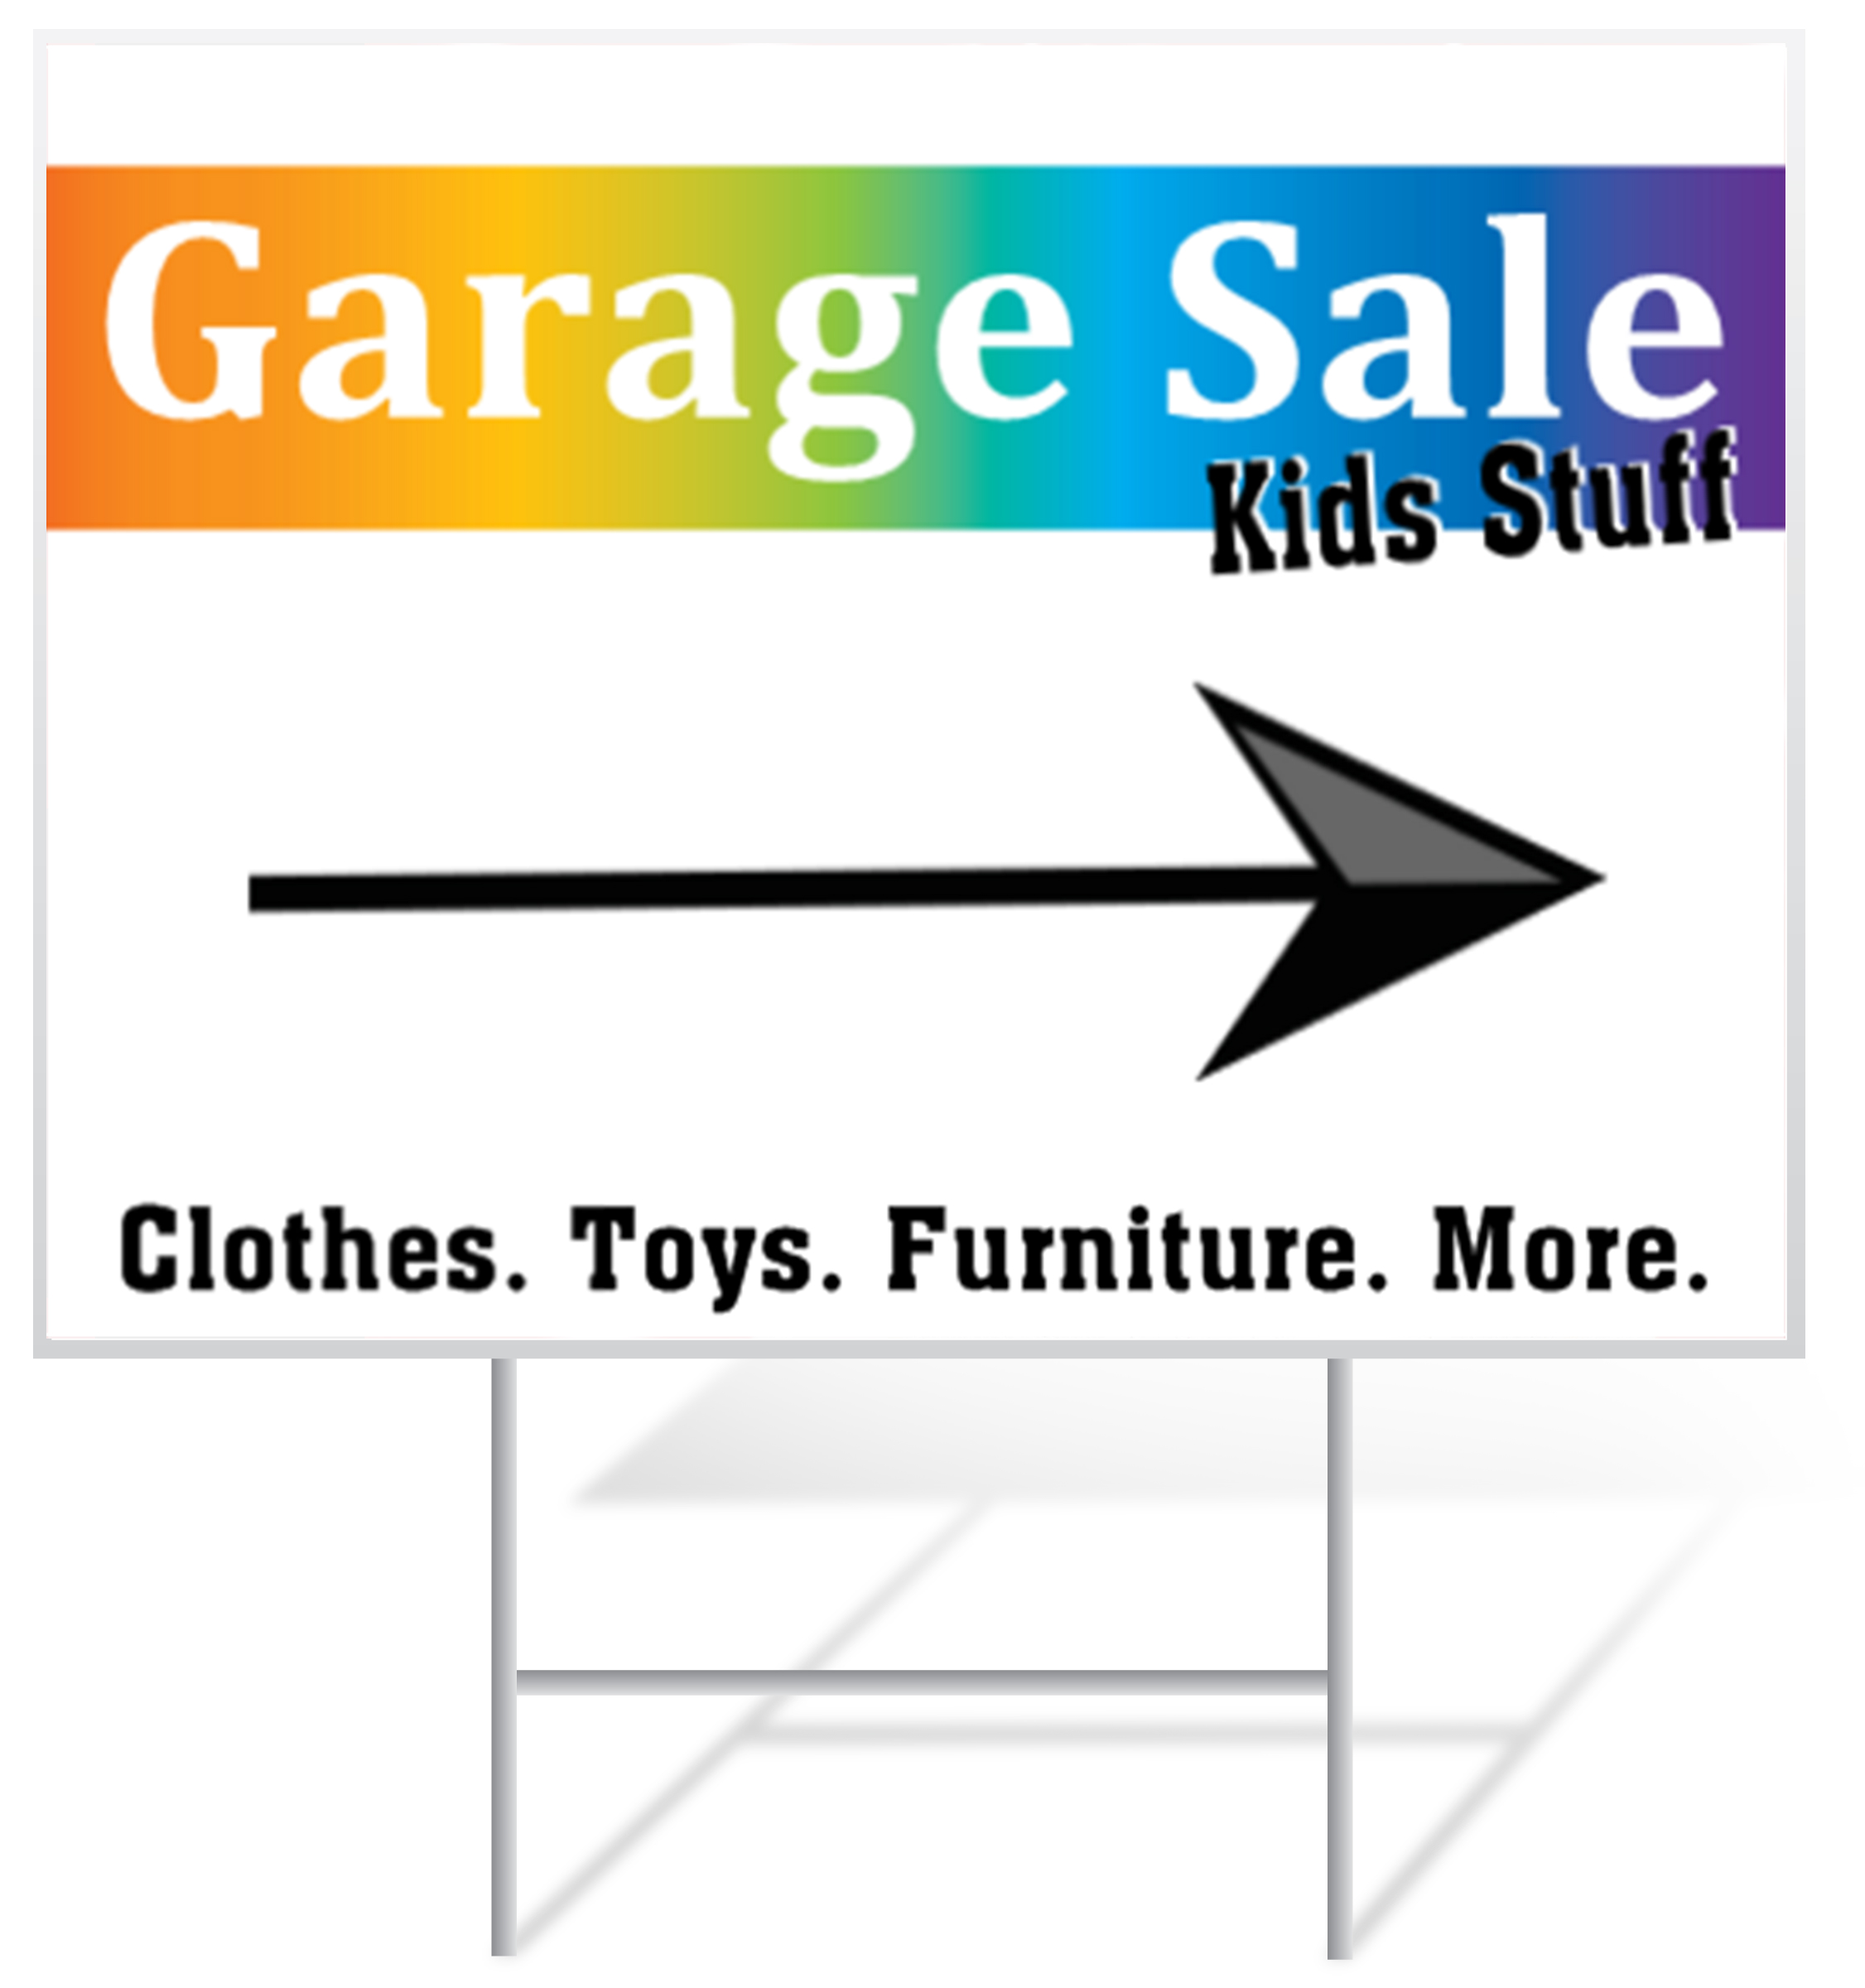 Garage Sale Lawn Sign Example | LawnSigns.com